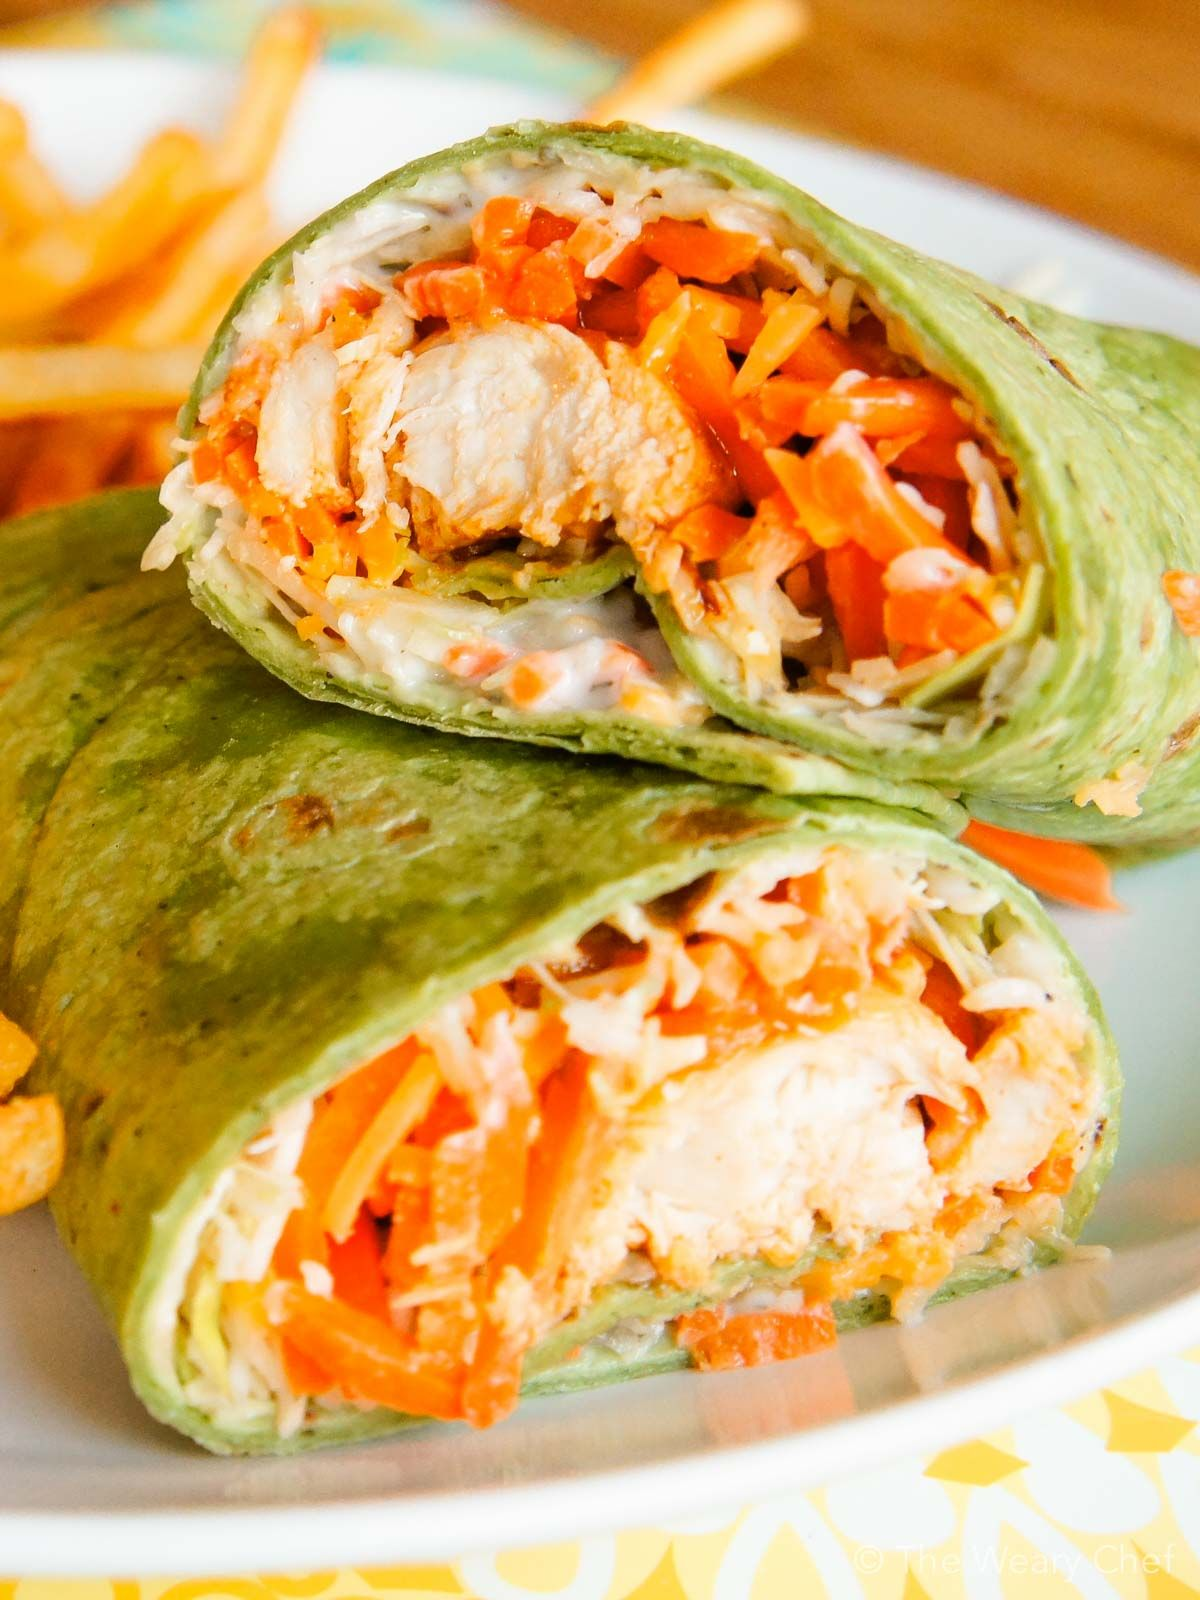 These Easy Buffalo Chicken Wraps Come Together Quickly And